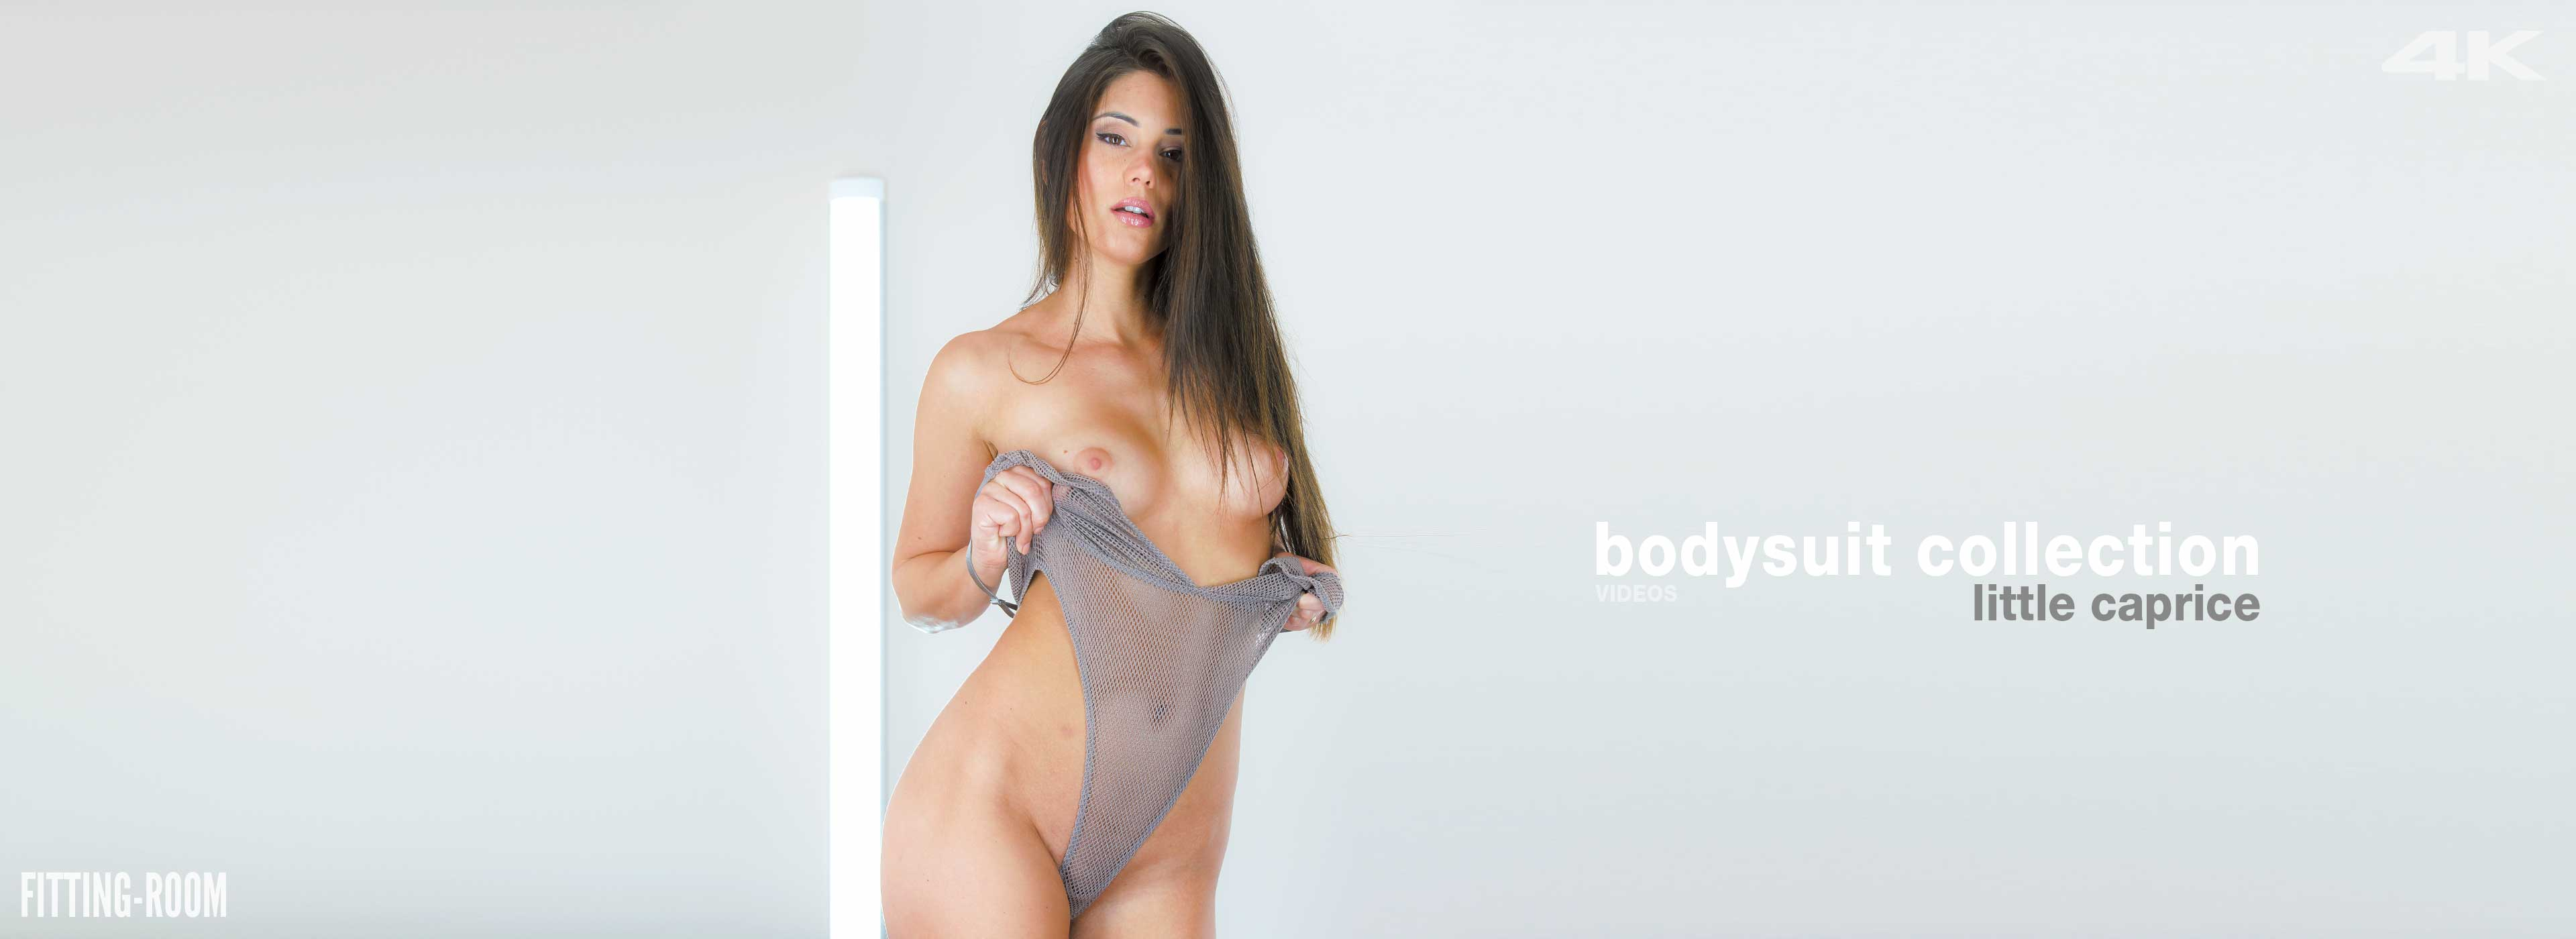 Little Caprice is the most popular one on the Fitting-Room and once you watch her videos, you will see just why that is